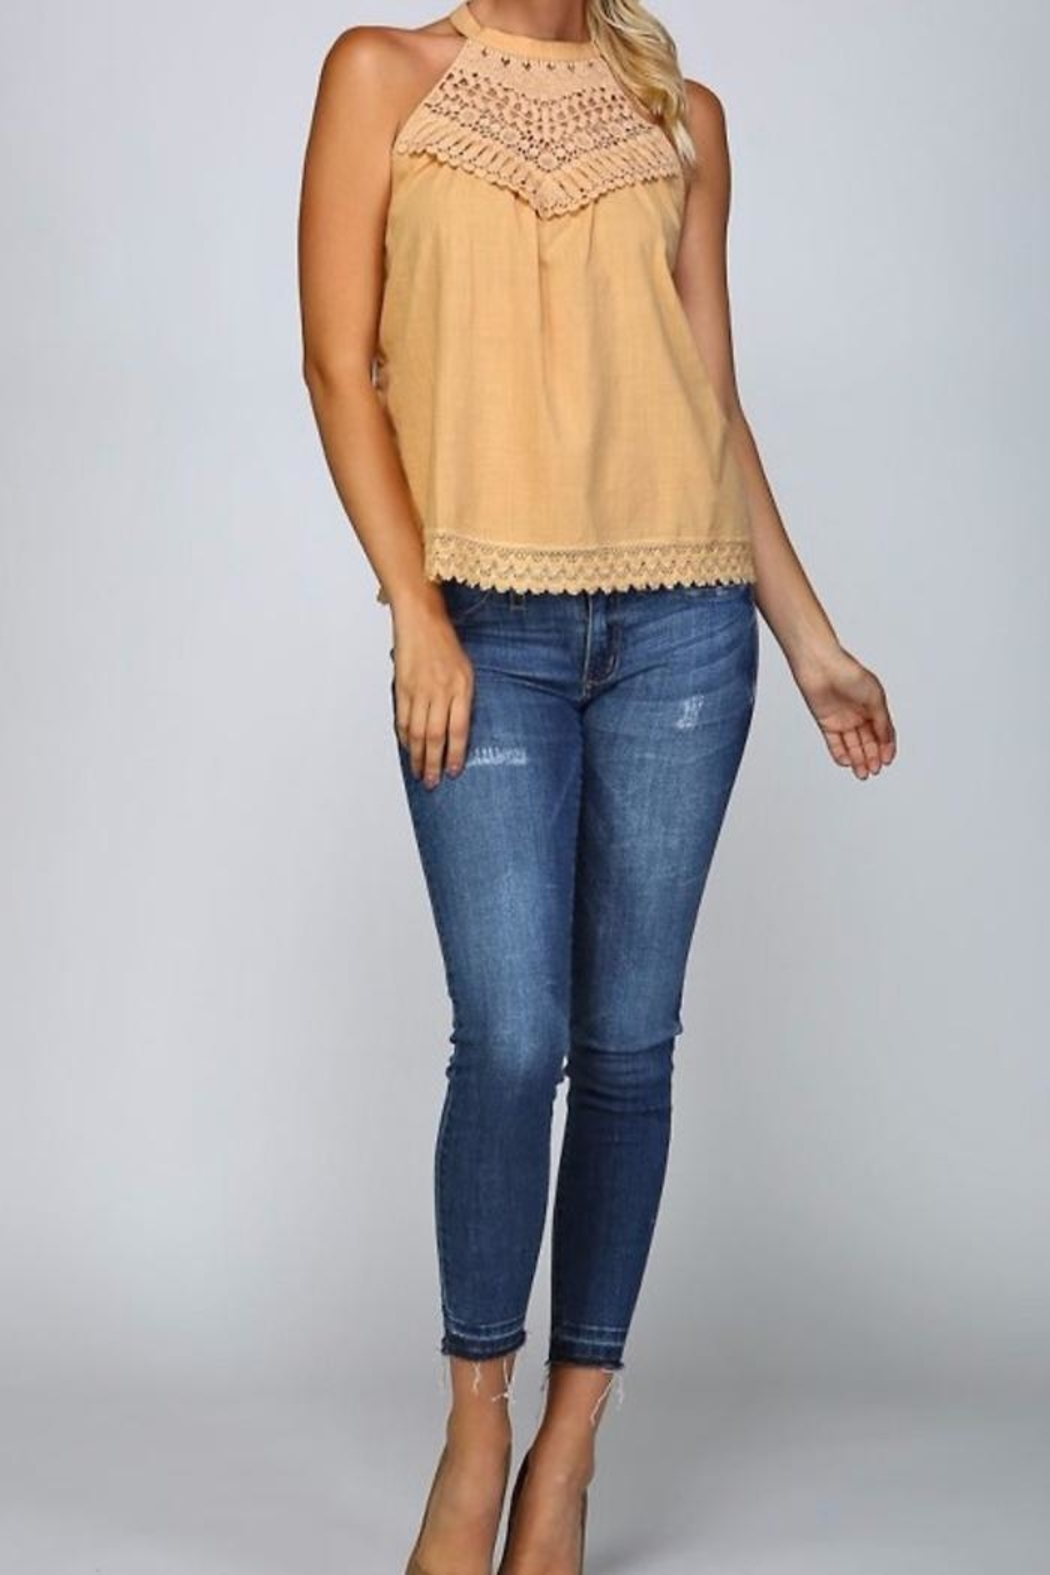 People Outfitter All Cotton Top - Front Full Image